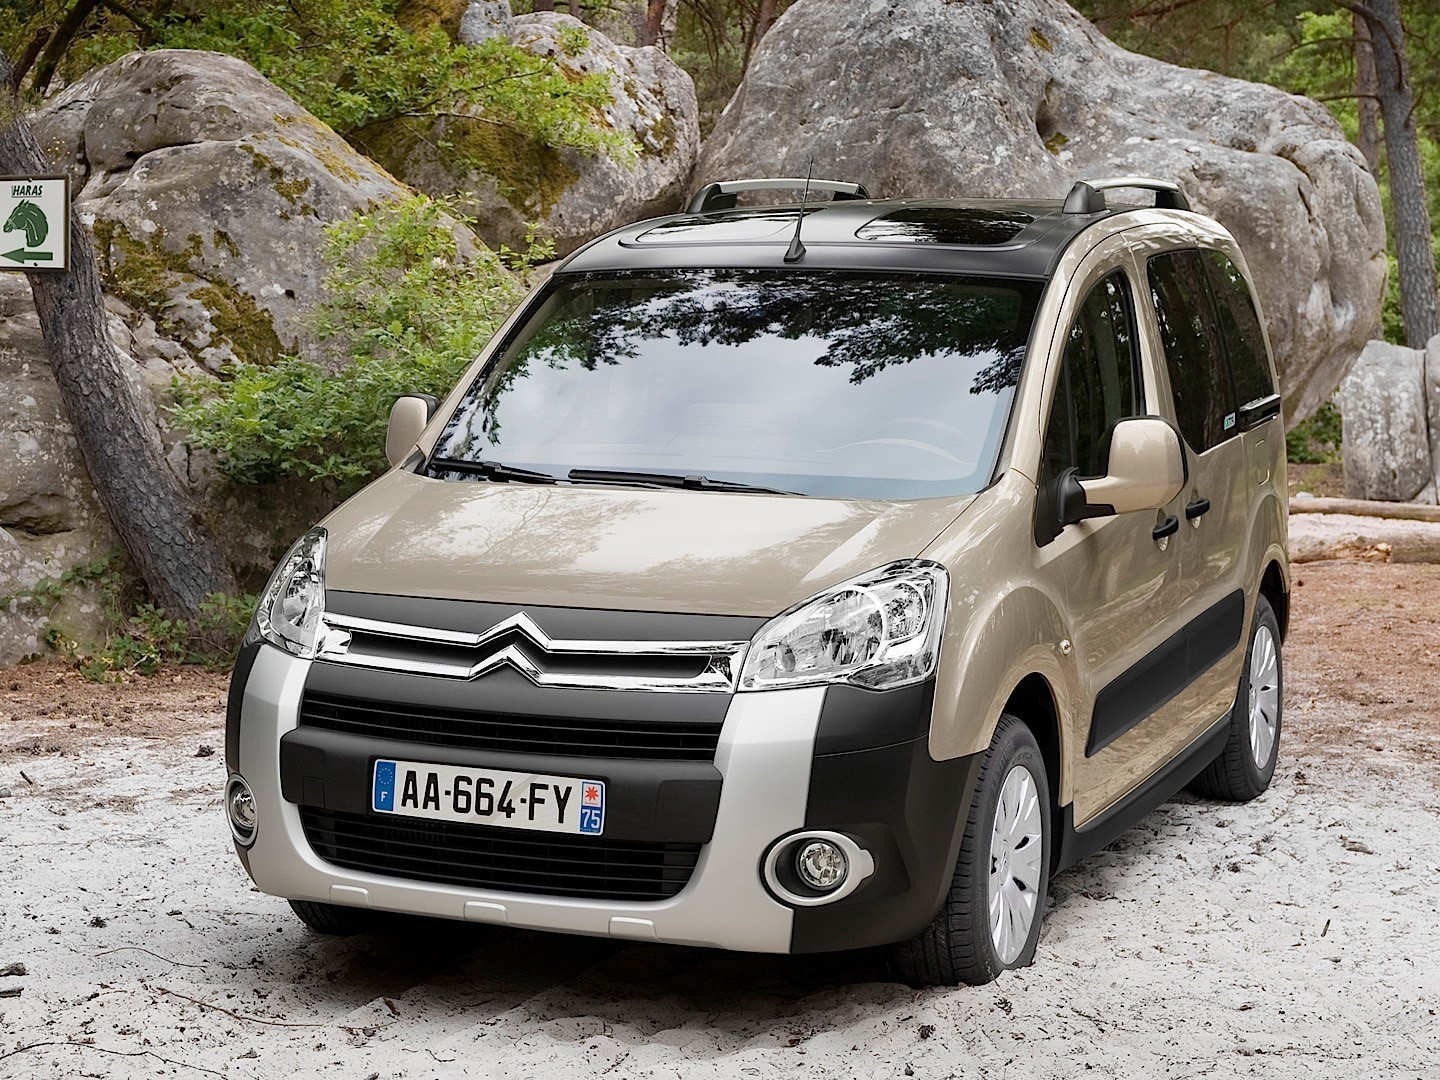 citroen berlingo specs 2008 2009 2010 2011 2012 autoevolution. Black Bedroom Furniture Sets. Home Design Ideas